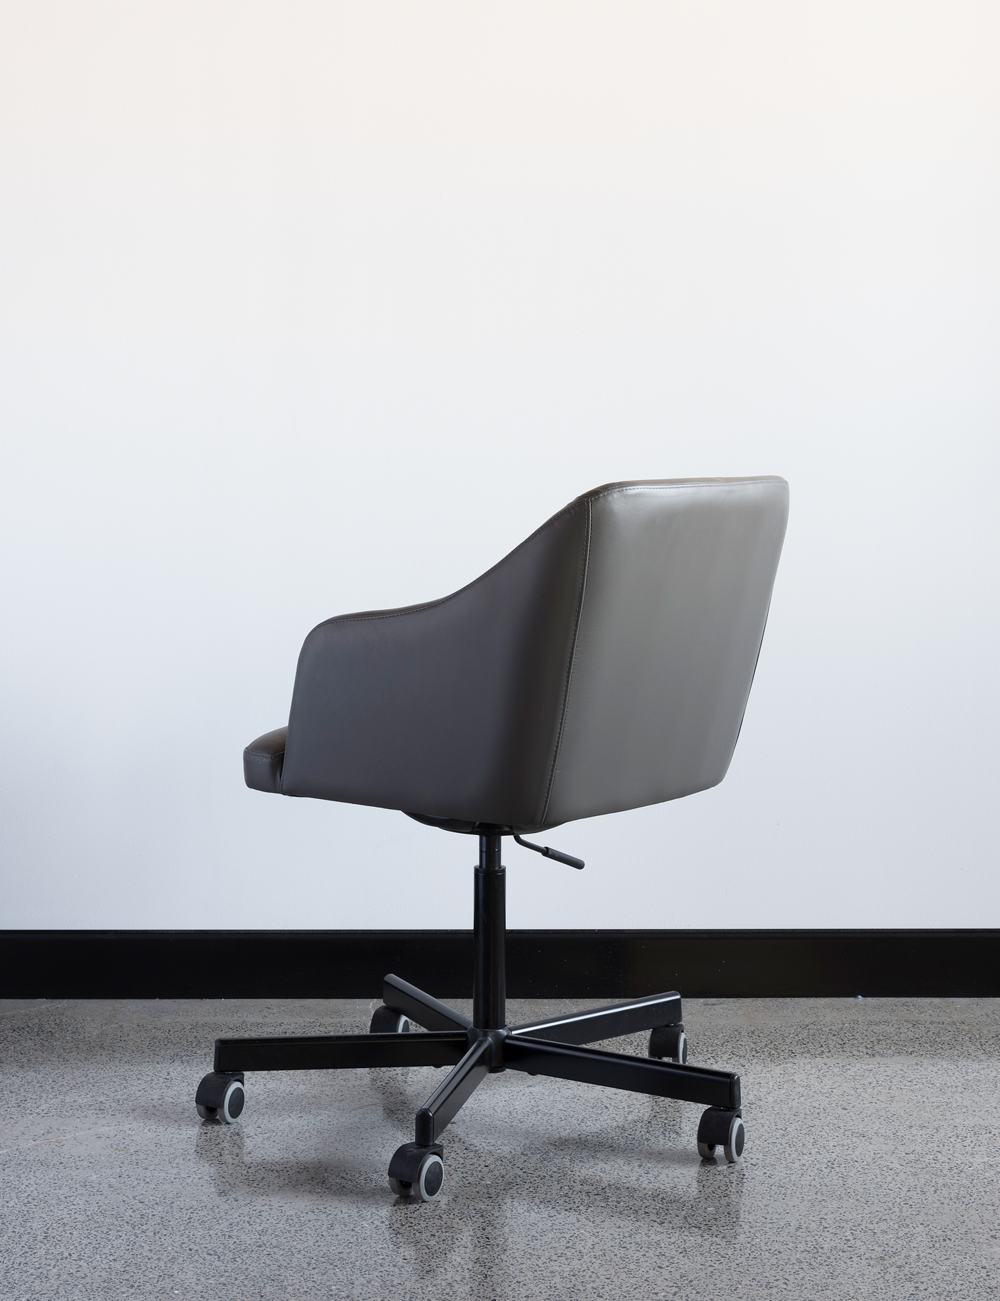 Grigio chair – Custom designed / created office chair